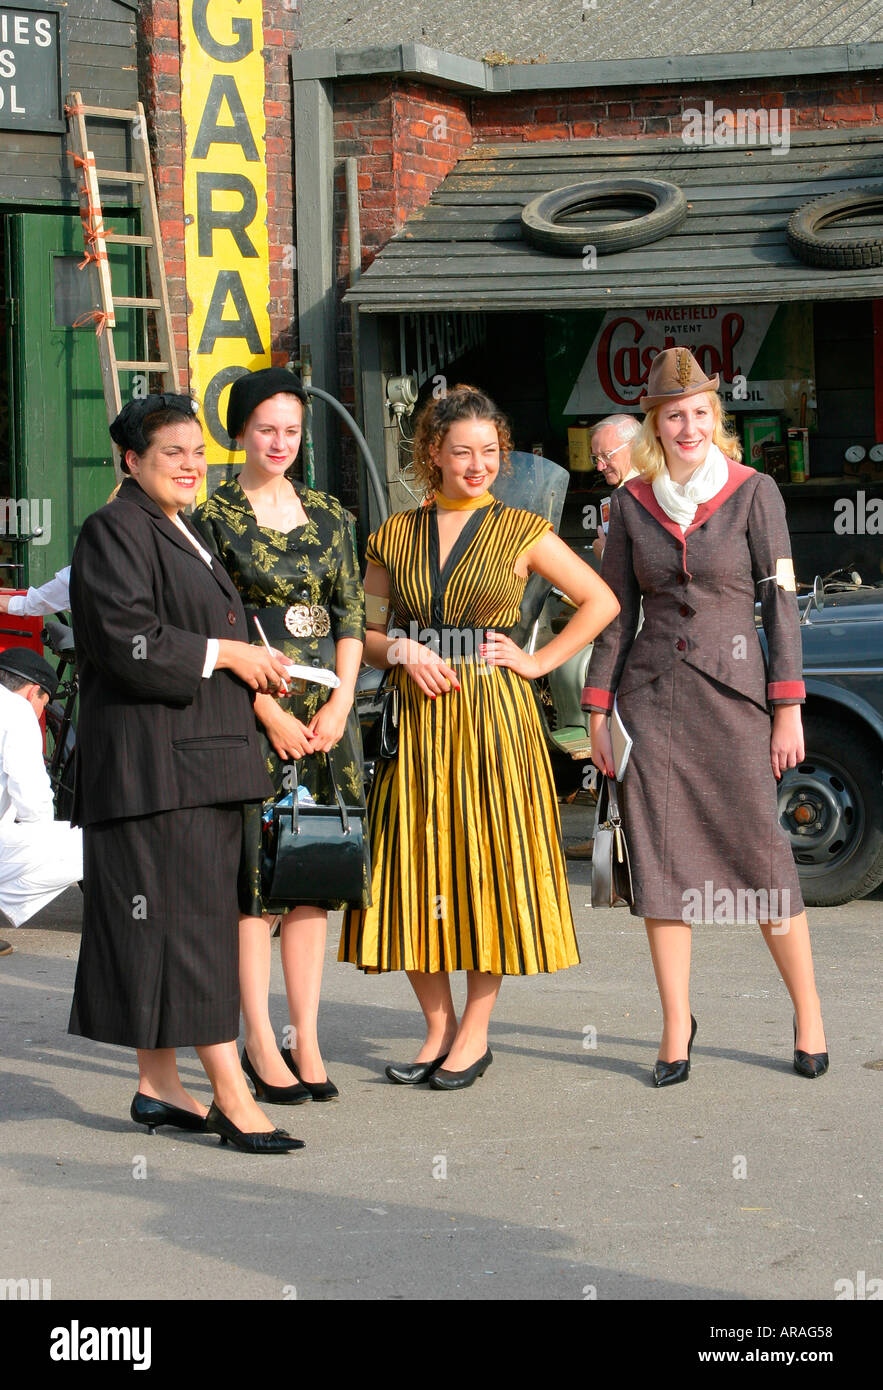 Goodwood Revival meeting with visitors in costume - Stock Image